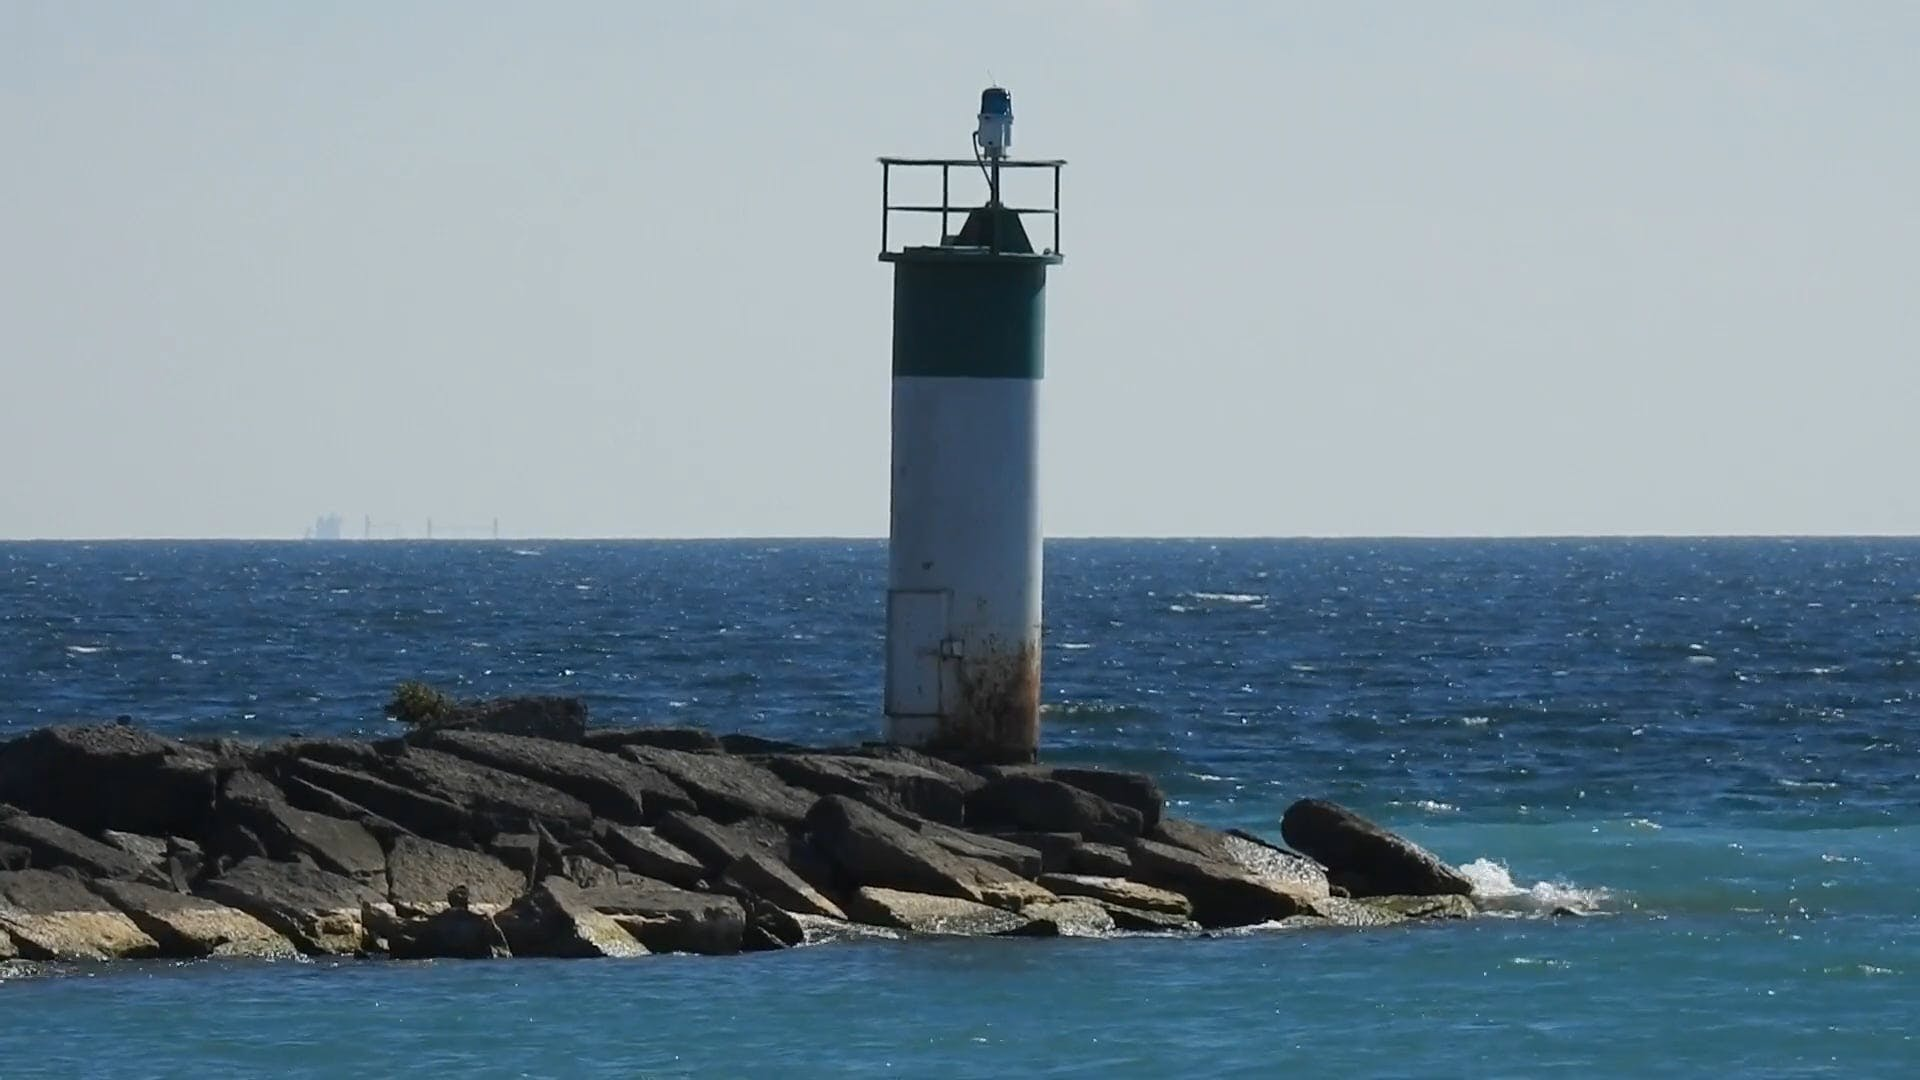 Close Up Video Of A Lighthouse